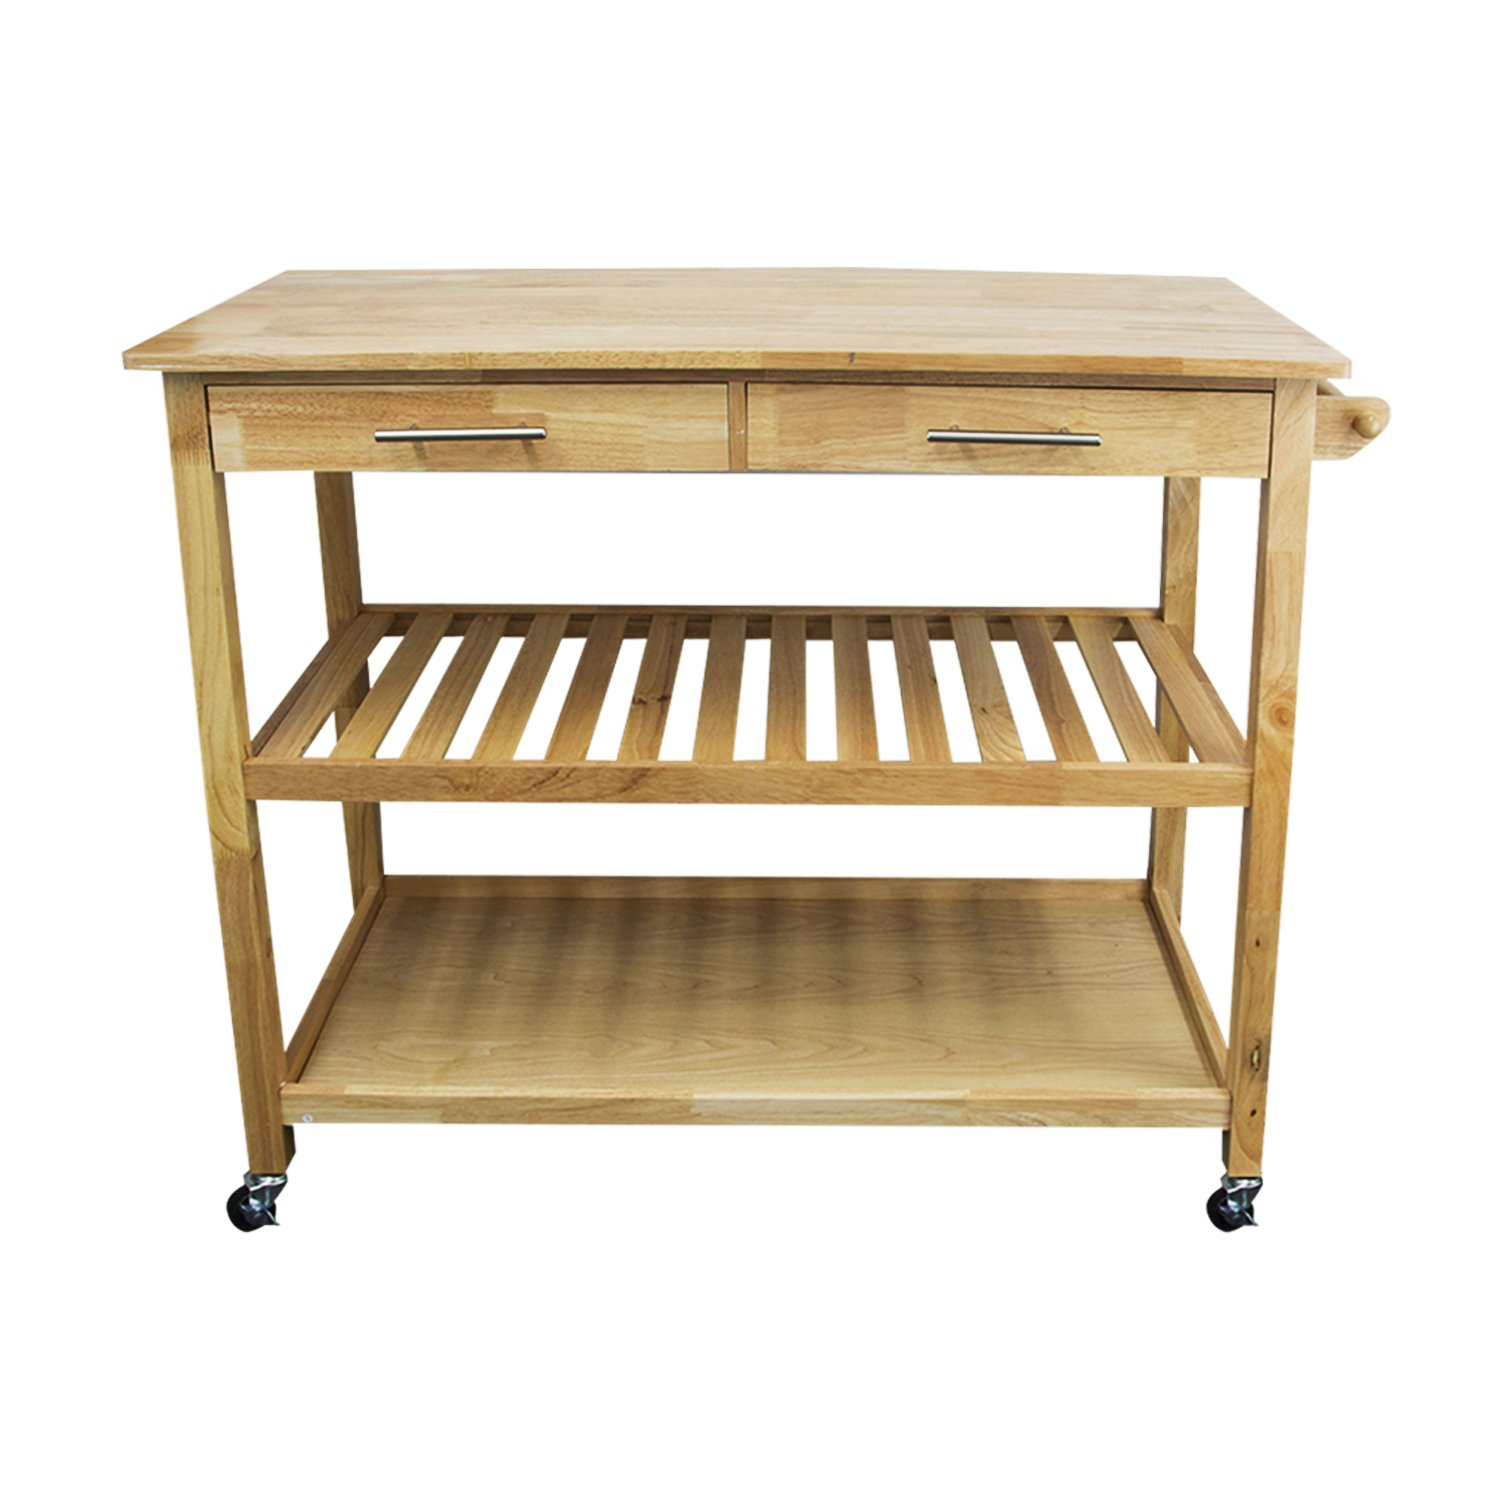 "Housables Kitchen Island Cart, Microwave Stand And Carts, Brown, Natural, 20 ½'' (L) x 44"" (W) x 36"" (H), Wood Top, Rolling, Home Storage Table, Utility Shelf, With 2 Drawers, Lockable Wheel"